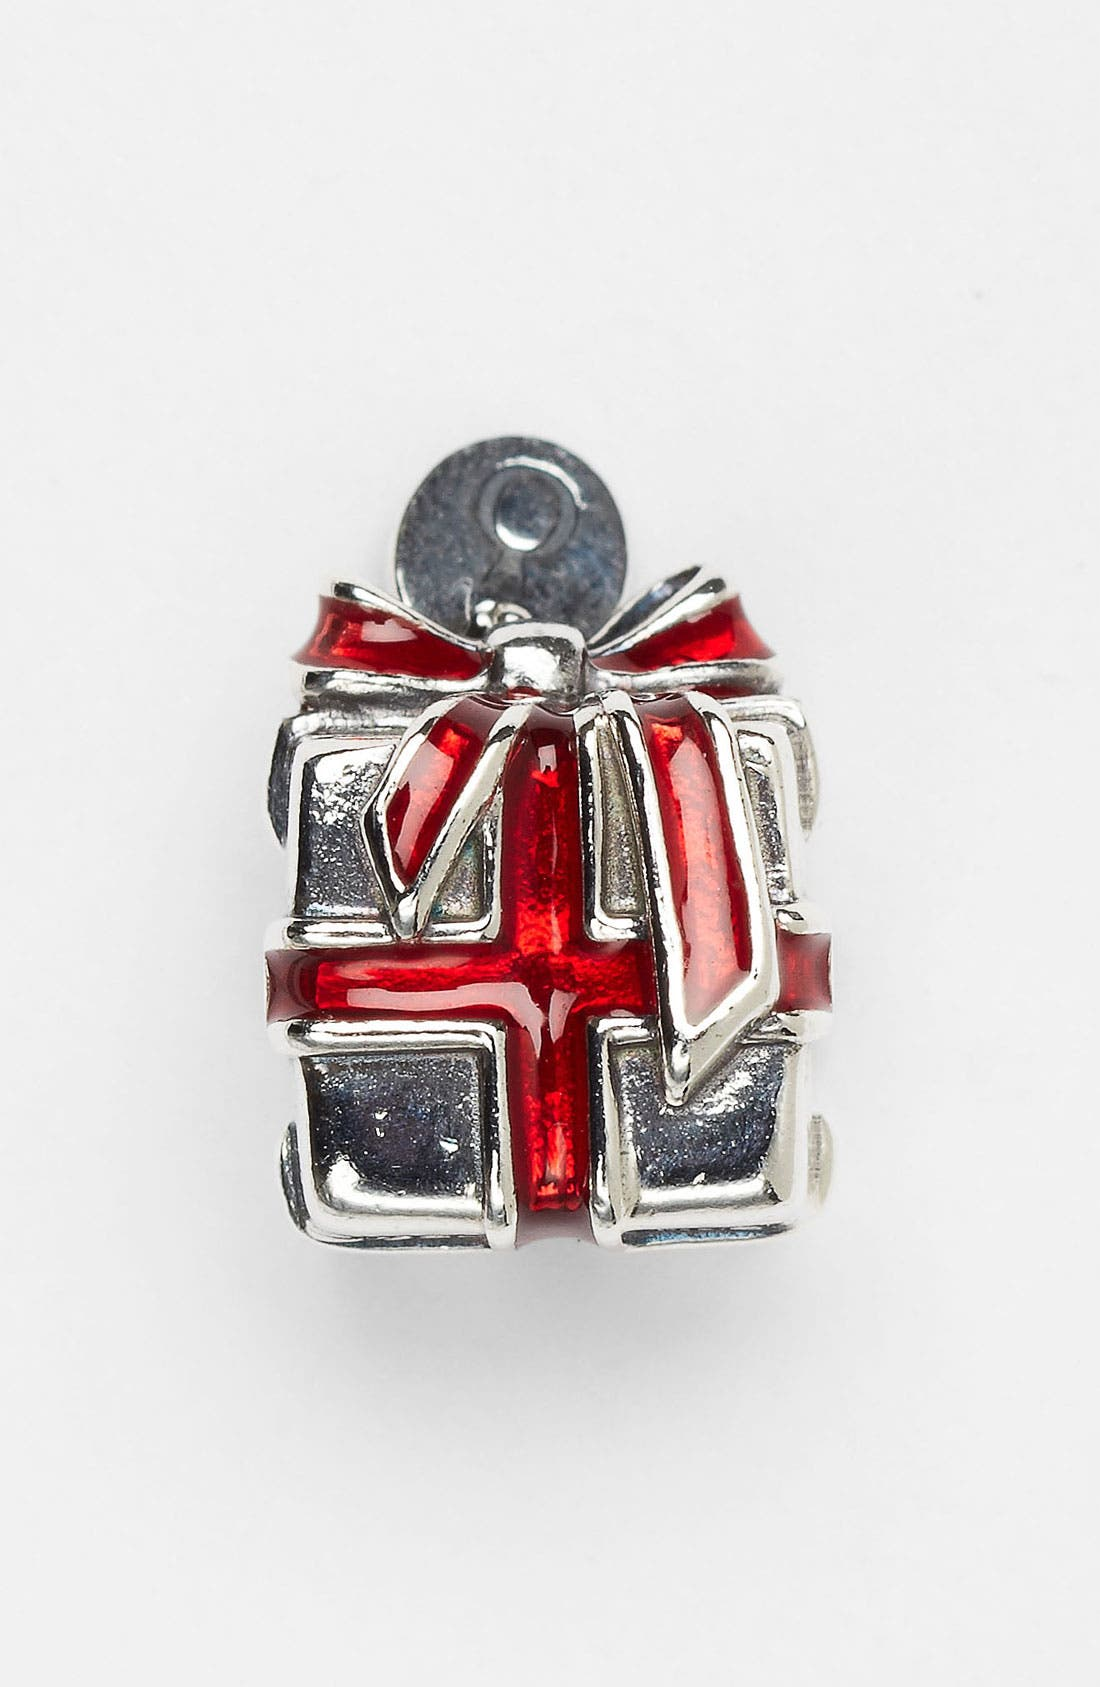 Alternate Image 1 Selected - PANDORA Black Friday Charm (Limited Edition)